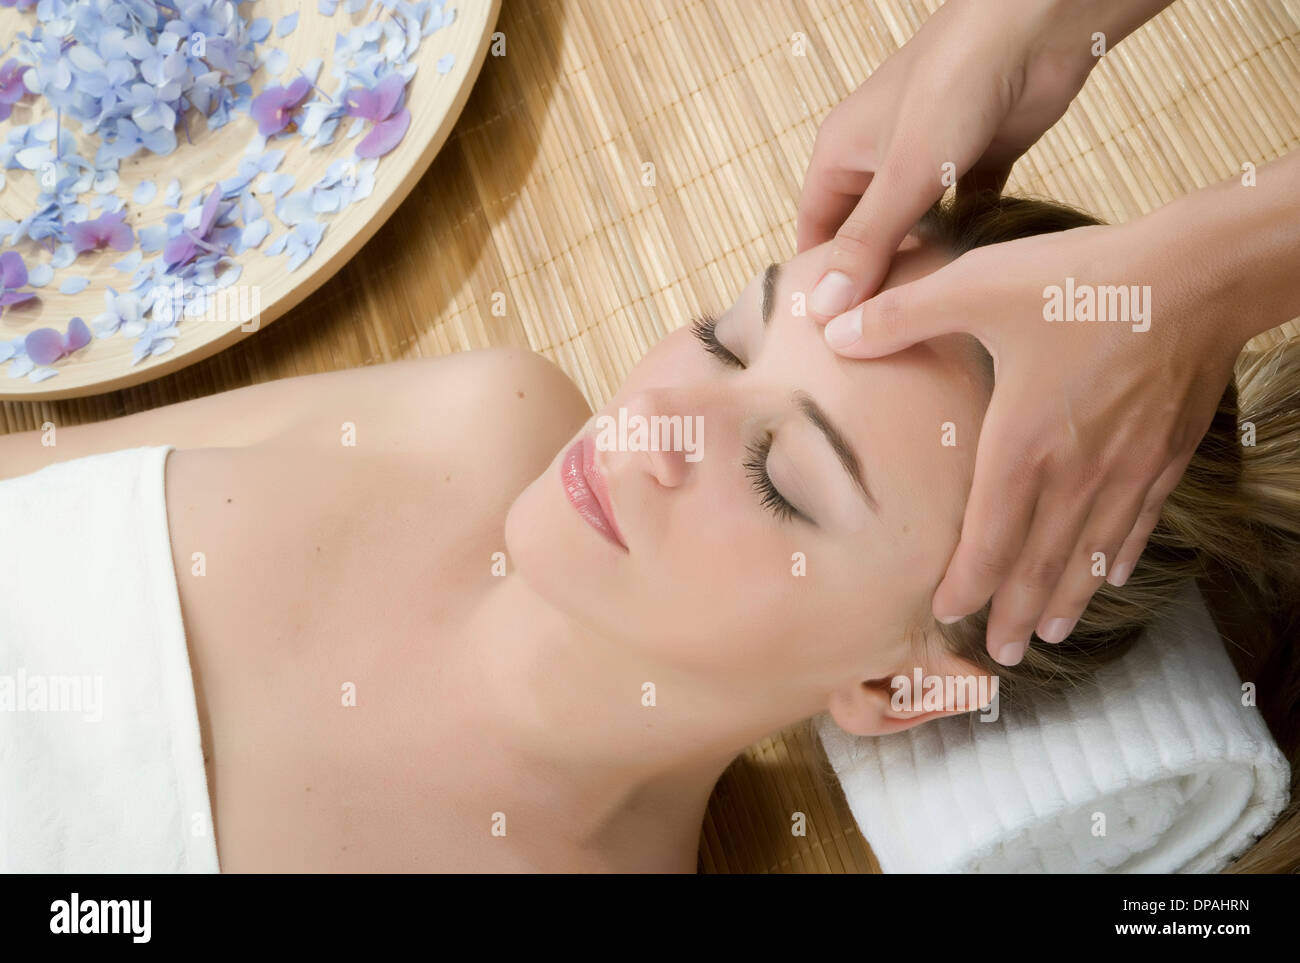 Woman at spa having forehead massaged Stock Photo